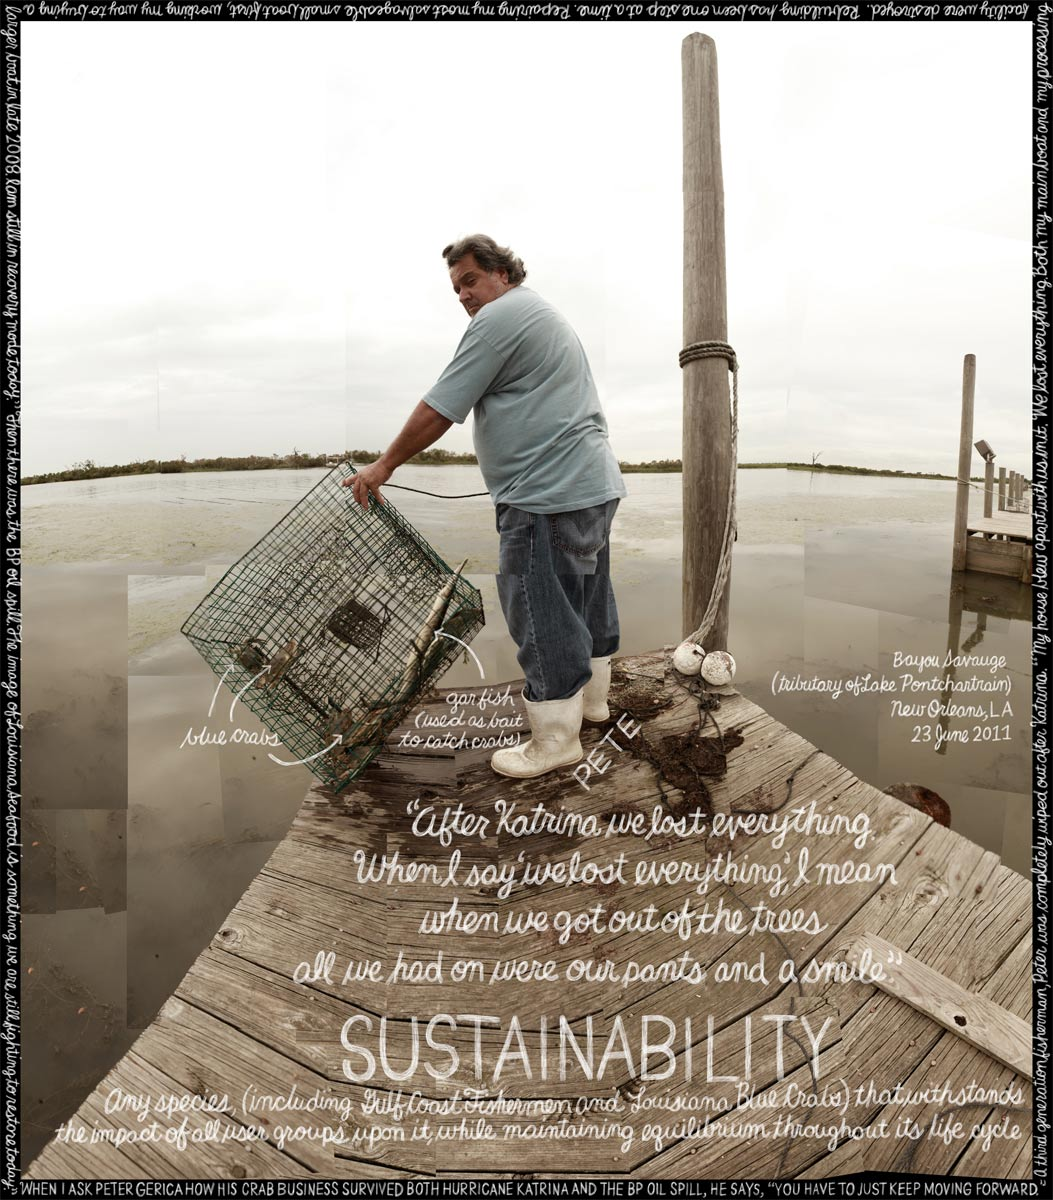 'Sustainability' Peter Gerica. New Orleans, LA. Credit: Information artwork by Douglas Gayeton. From the Lexicon of Sustainability project.